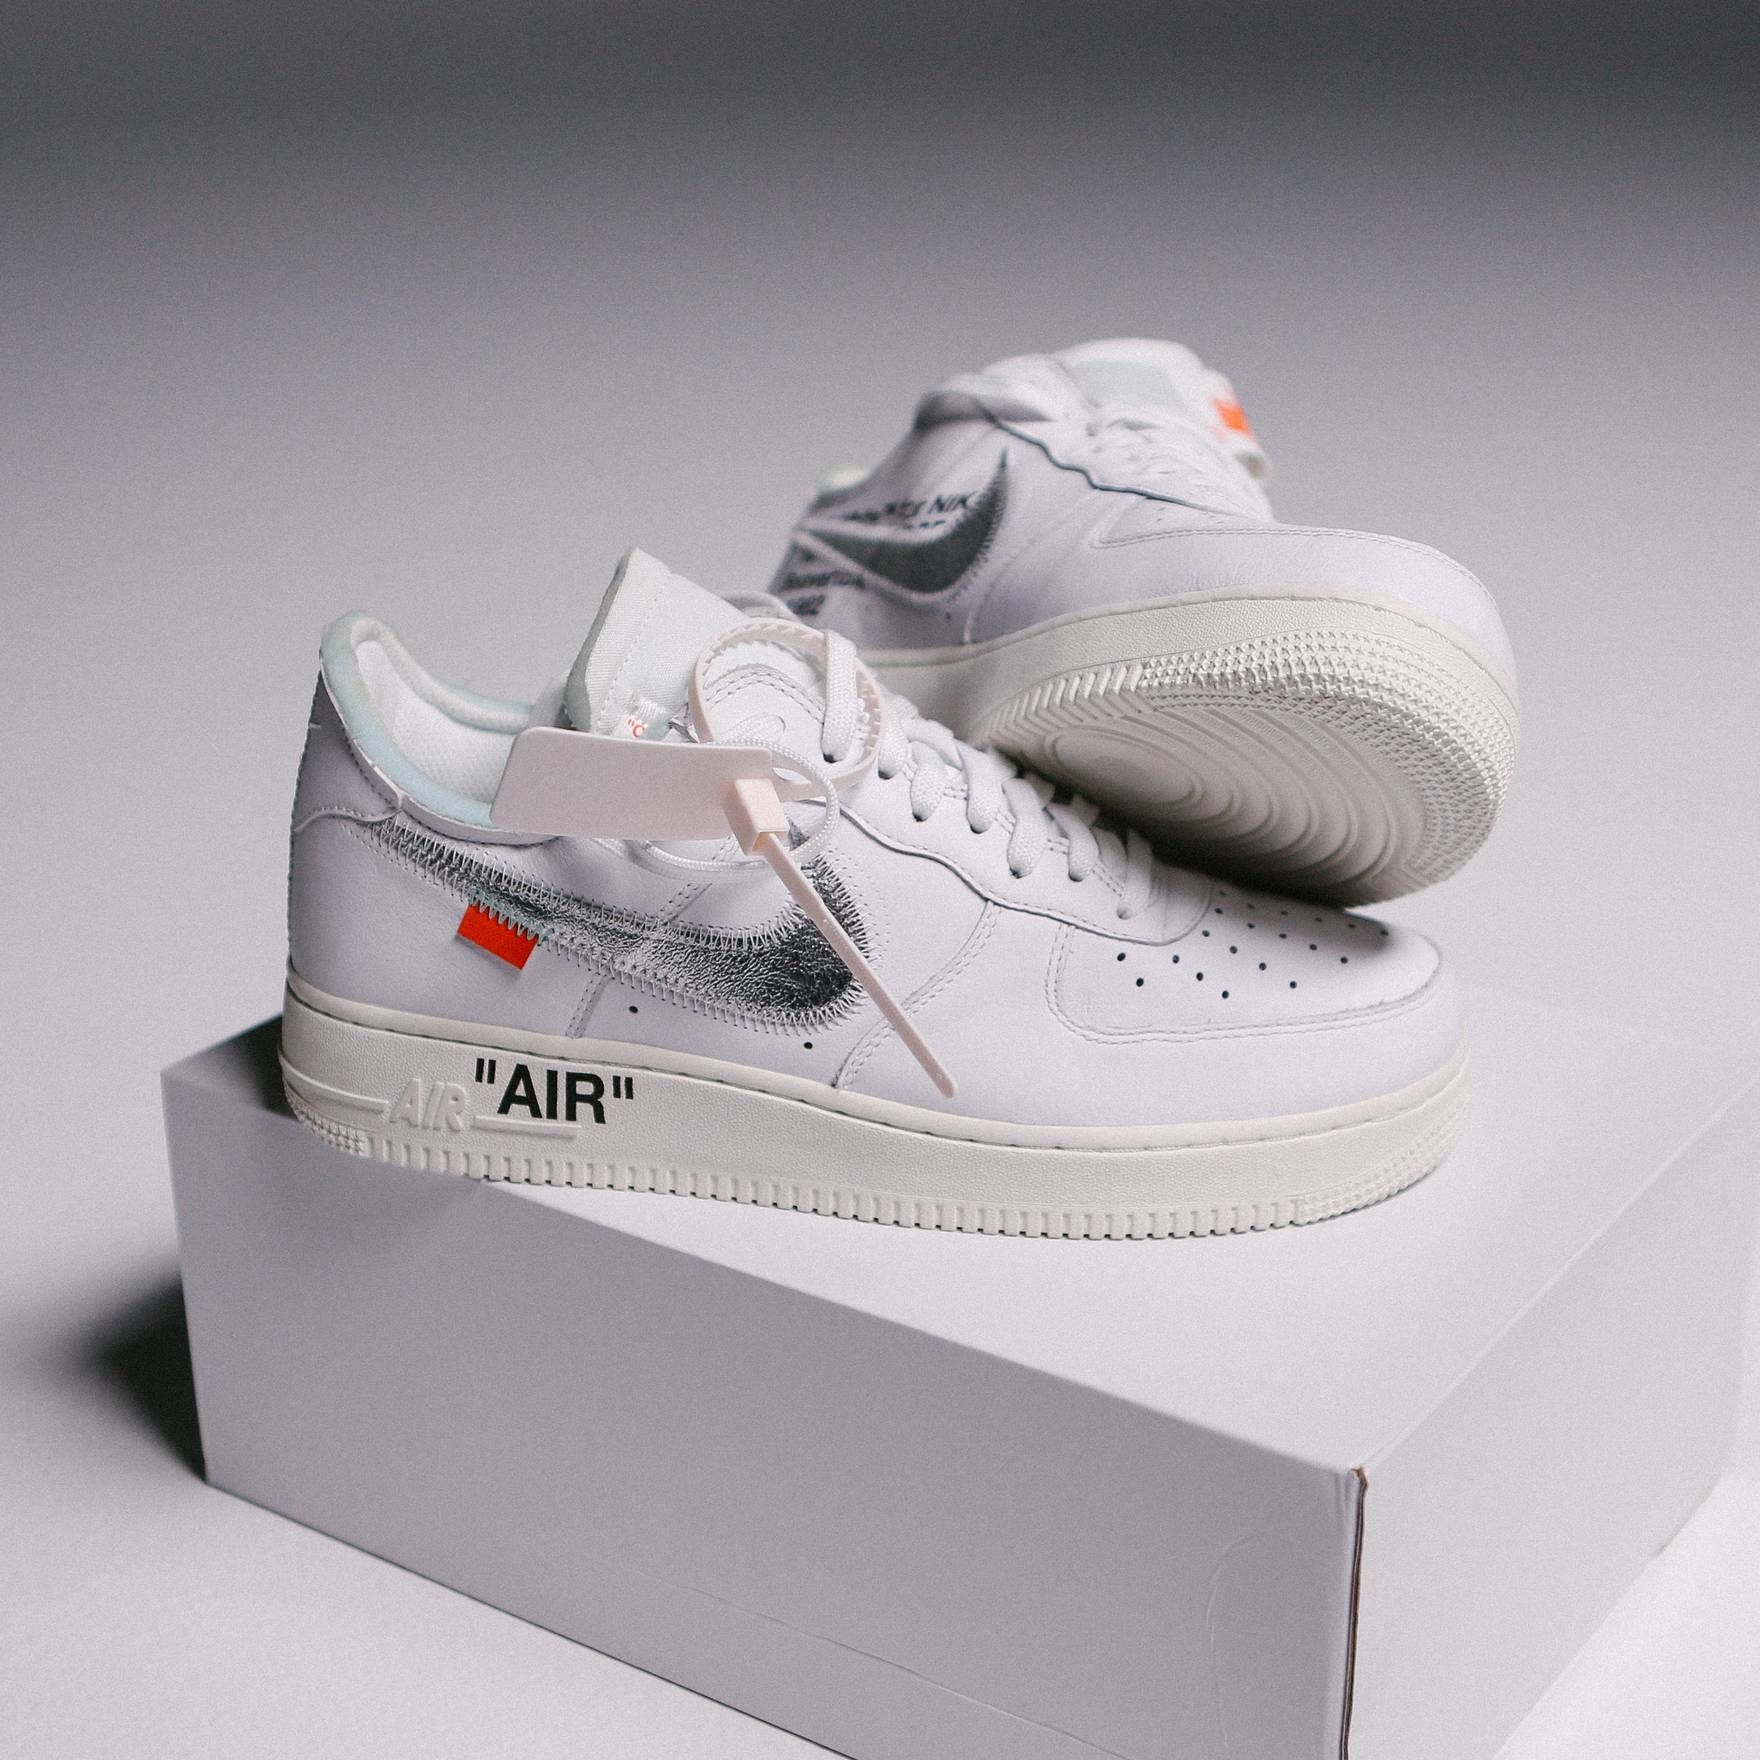 14226c20 Nike Off-White Nike Air Force One Collab ComplexCon Size US 9 / EU 42